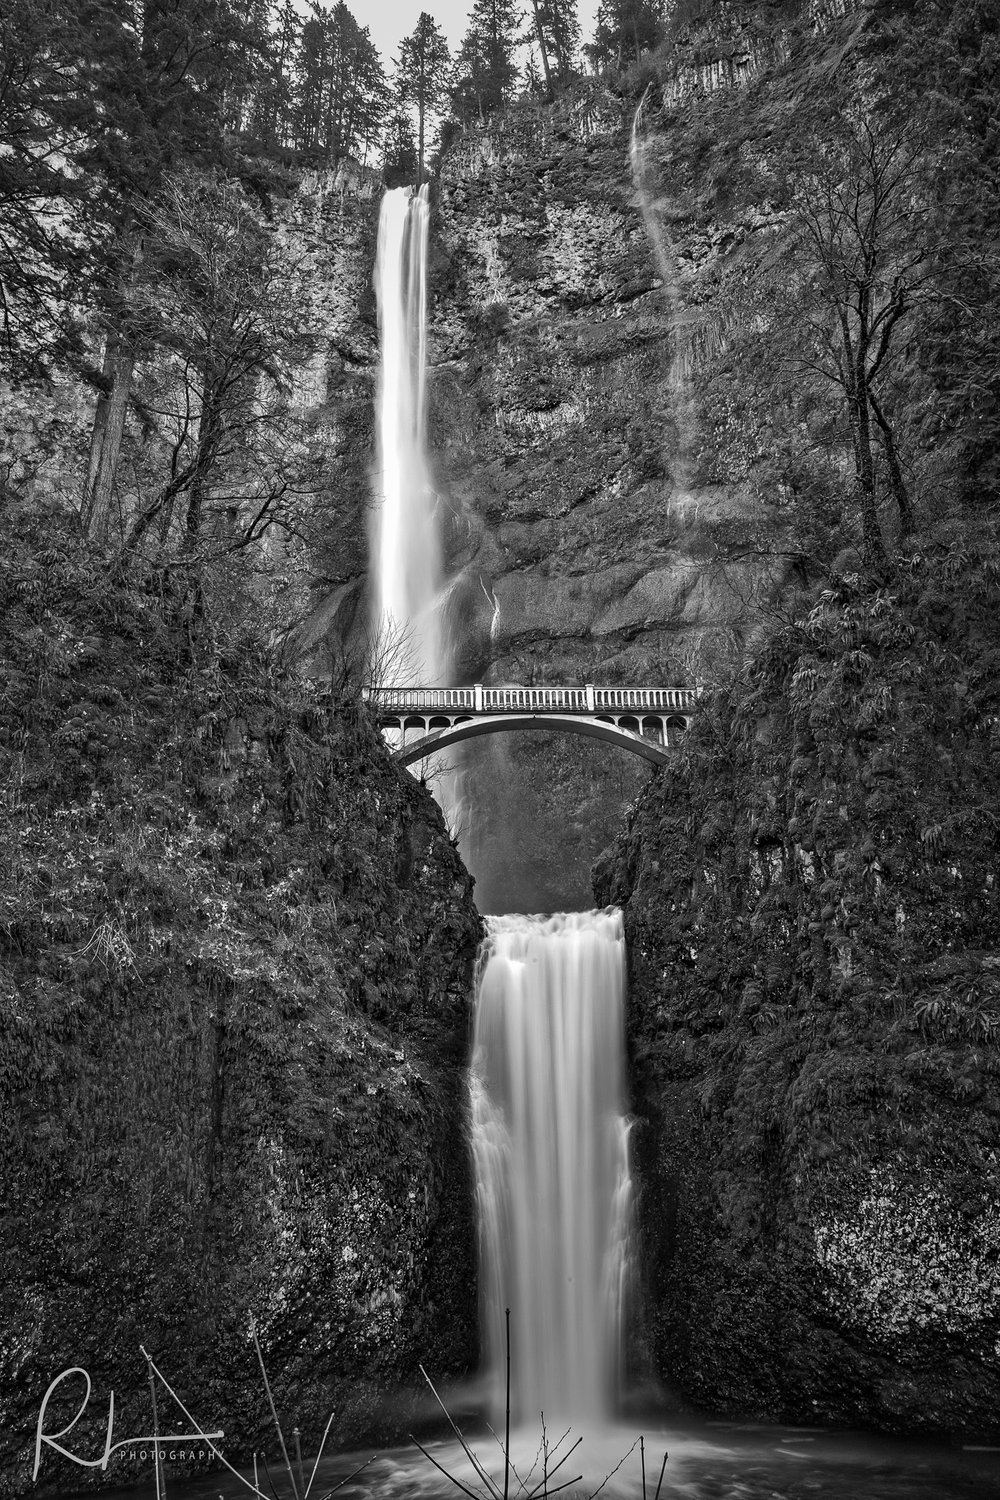 Black & White image of Multnomah Falls